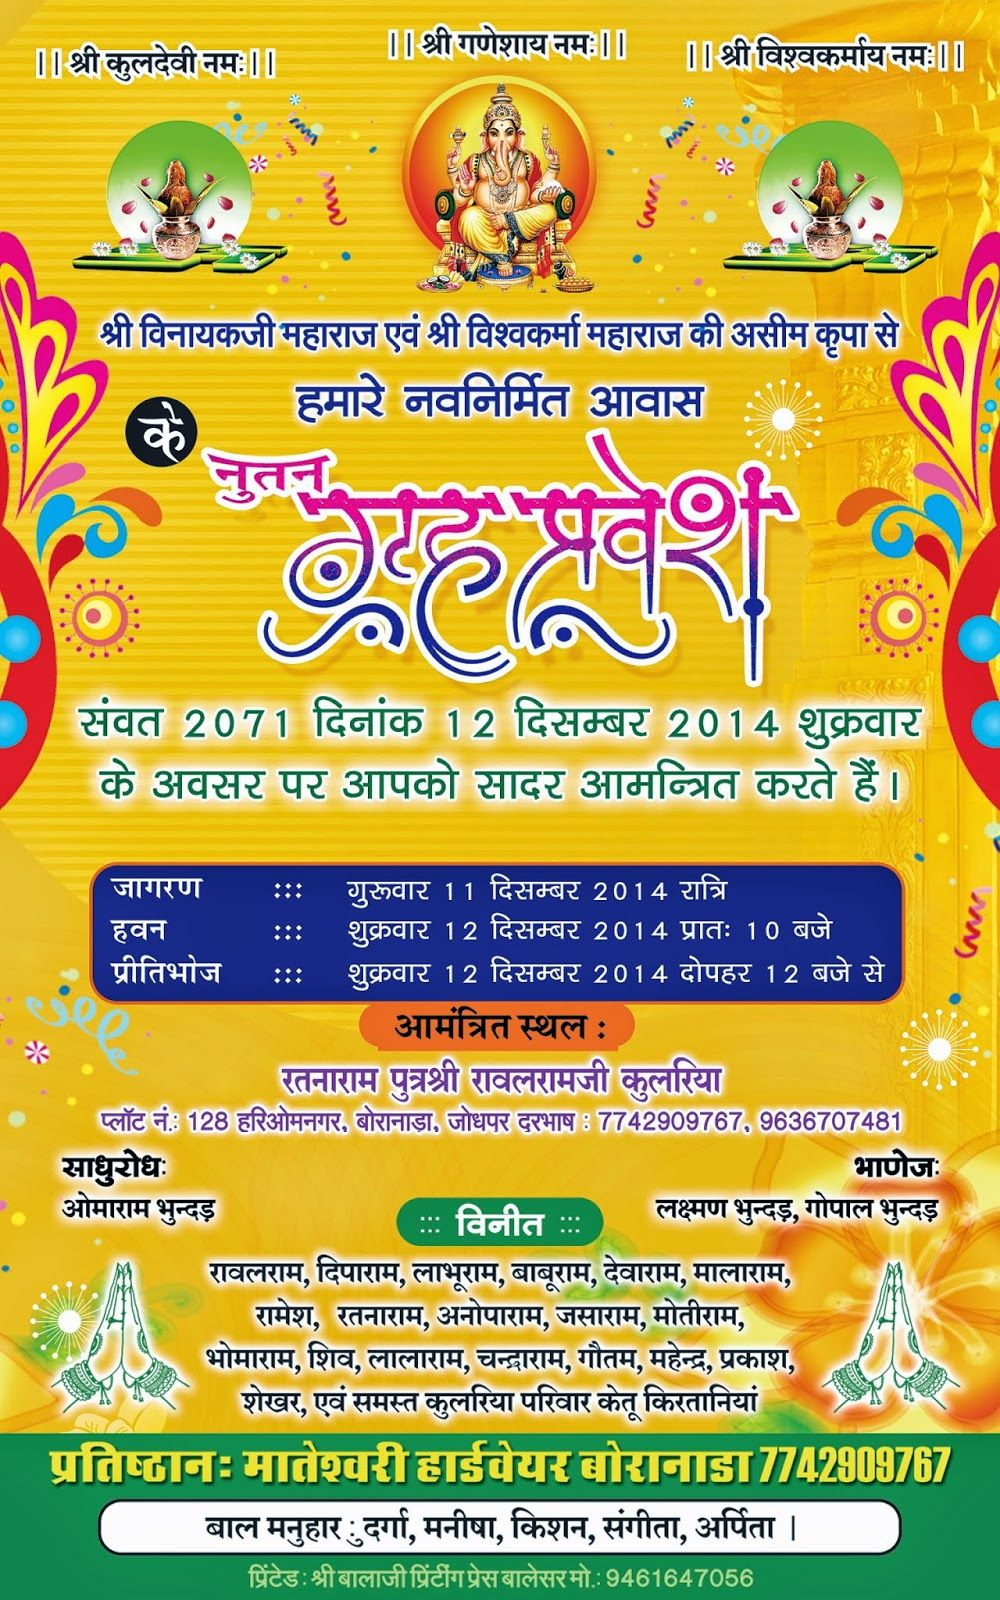 Griha pravesh invitation wordings in english card invitation ideas griha pravesh invitation wordings in english card invitation ideas simple modern griha pravesh invitation stopboris